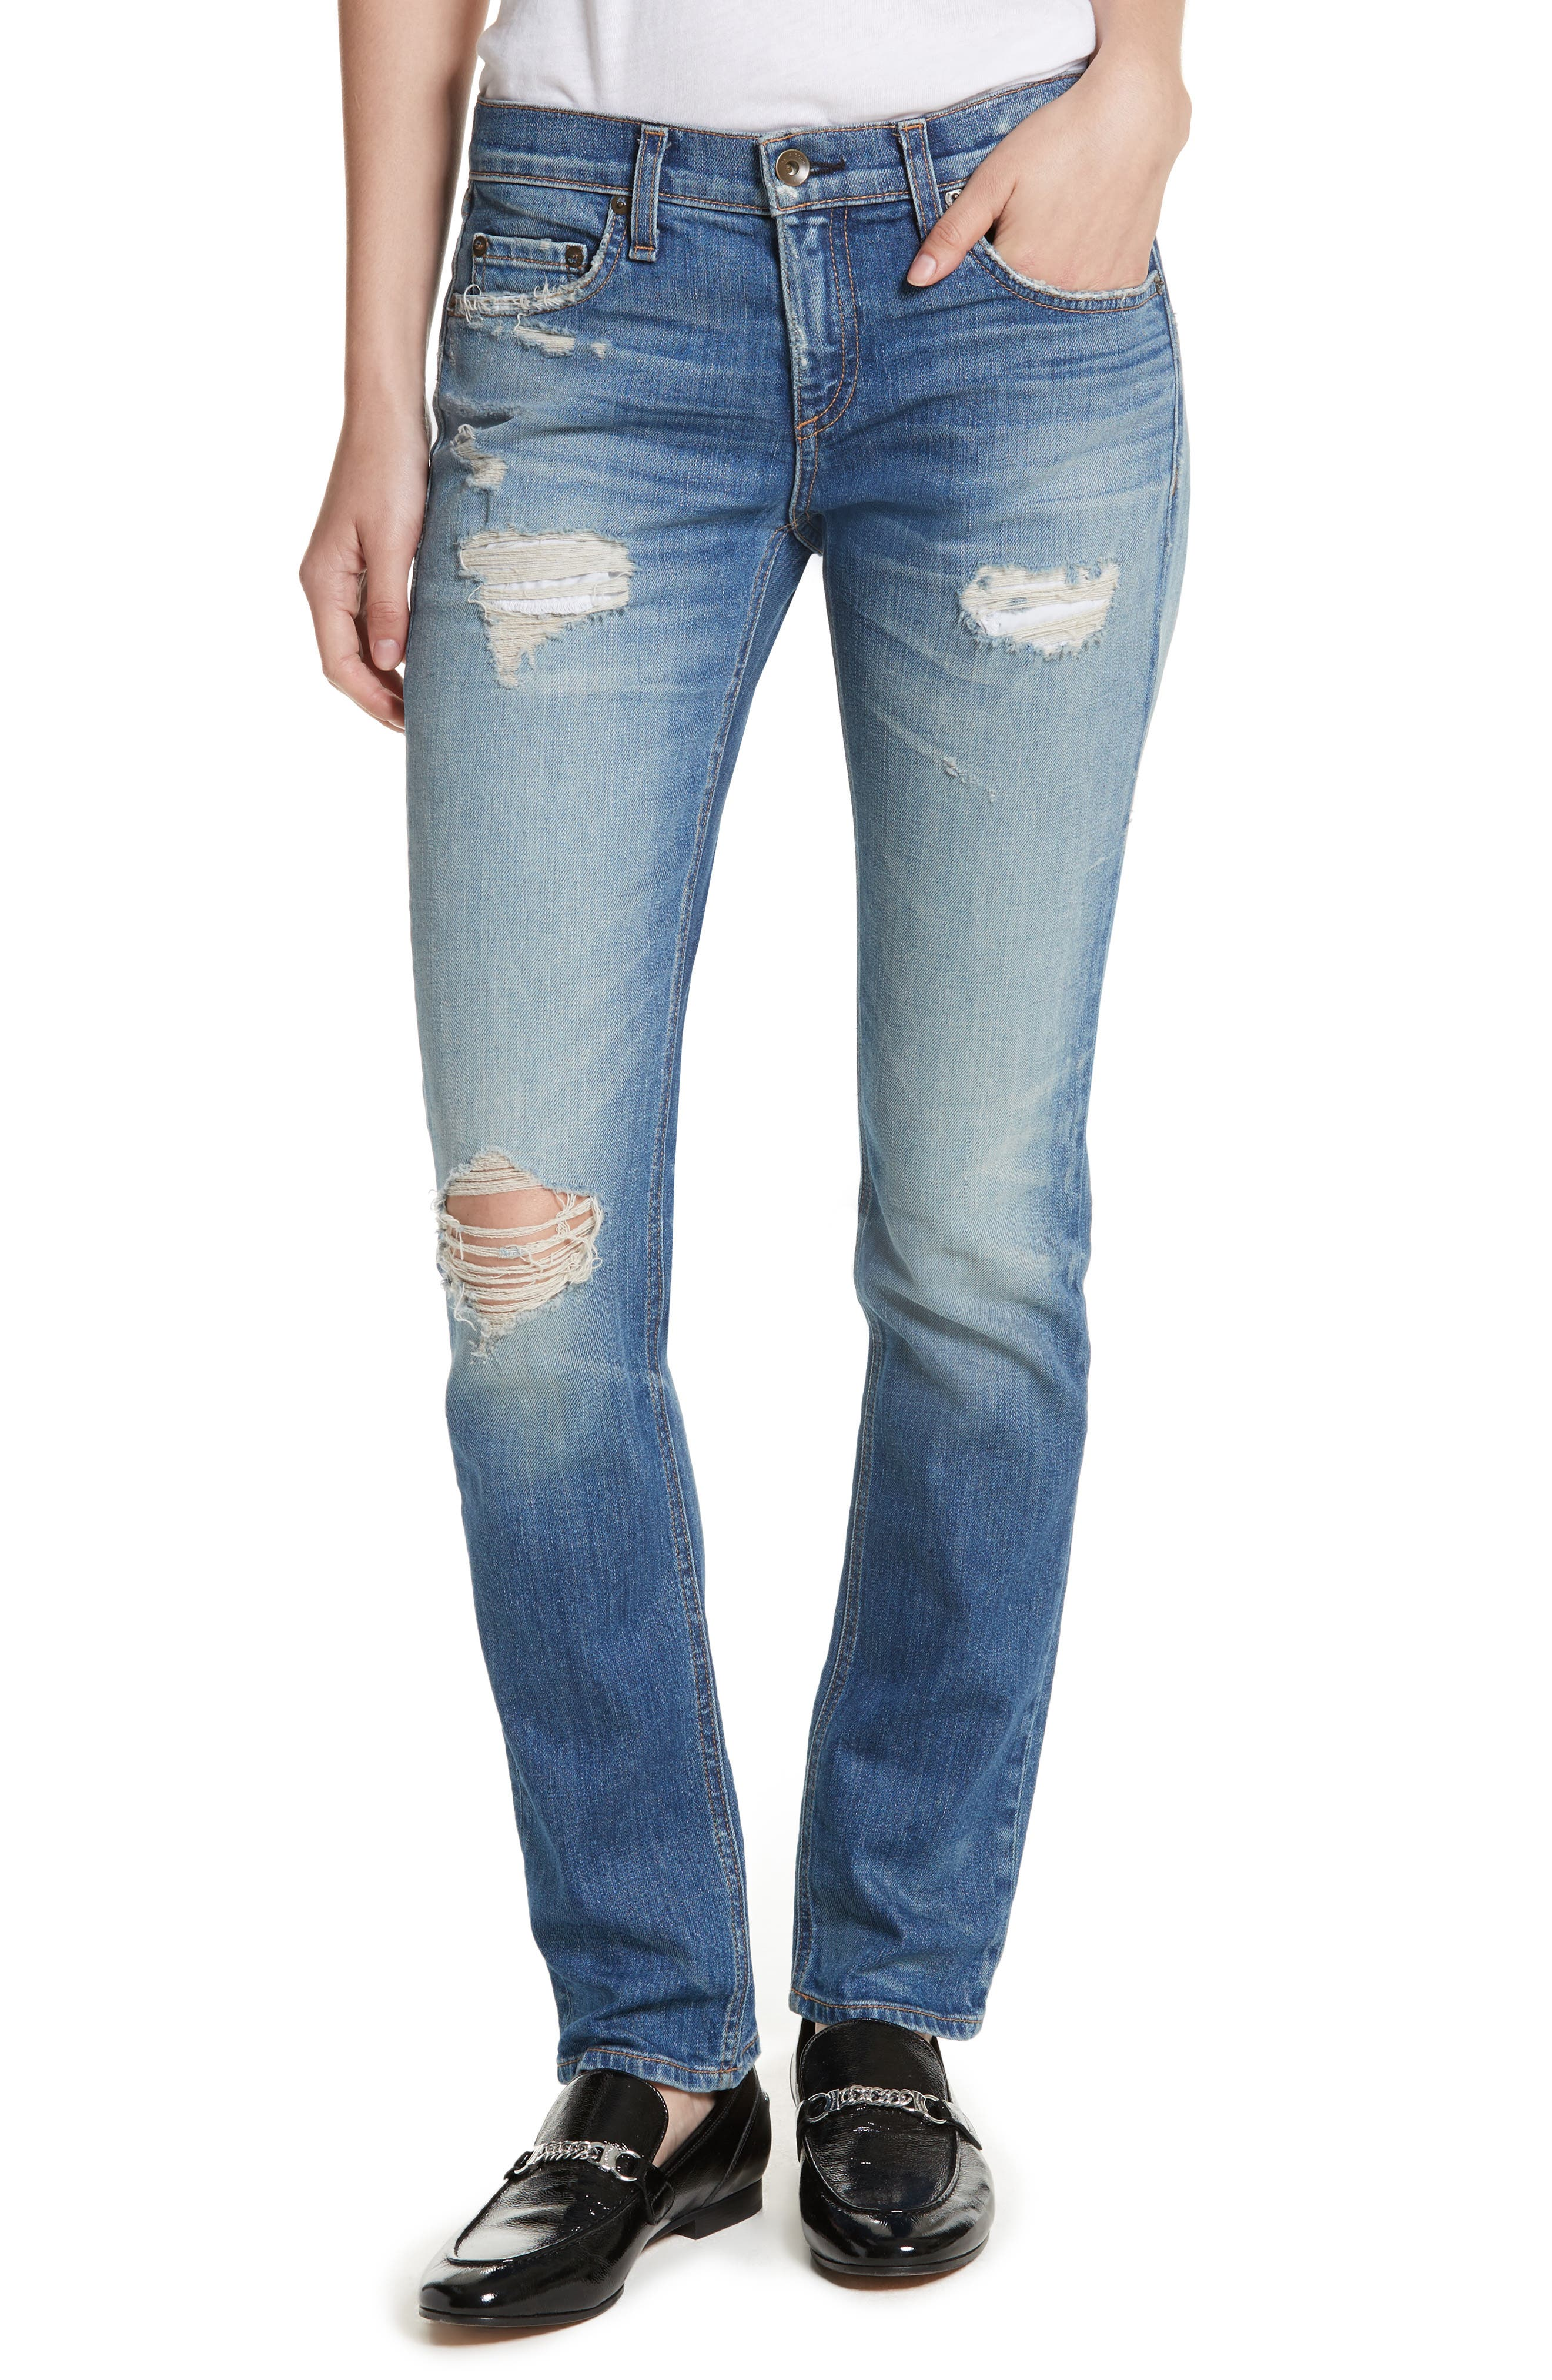 Dre Slim Boyfriend Jeans,                         Main,                         color, 420